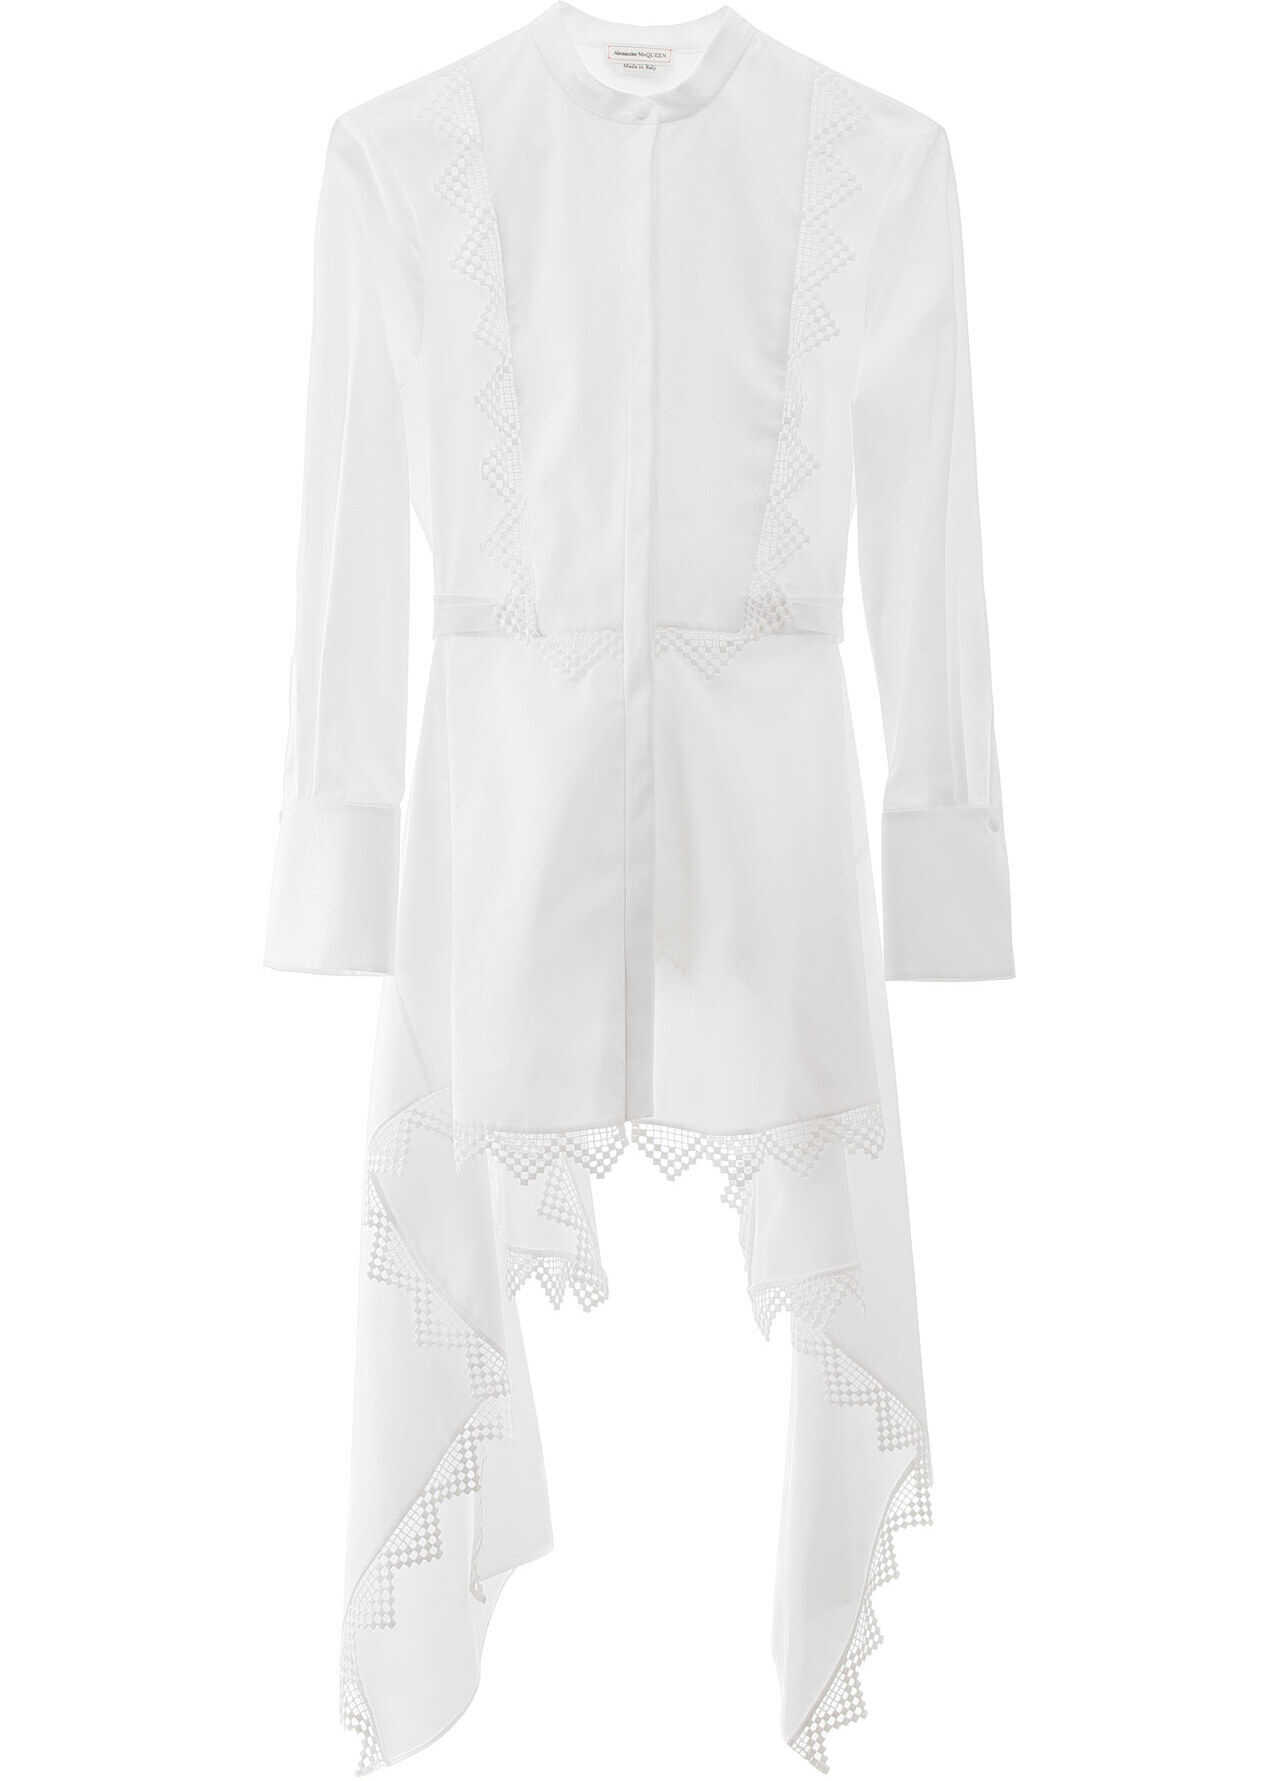 Alexander McQueen Asymmetrical Shirt With Lace Details OPTICALWHITE